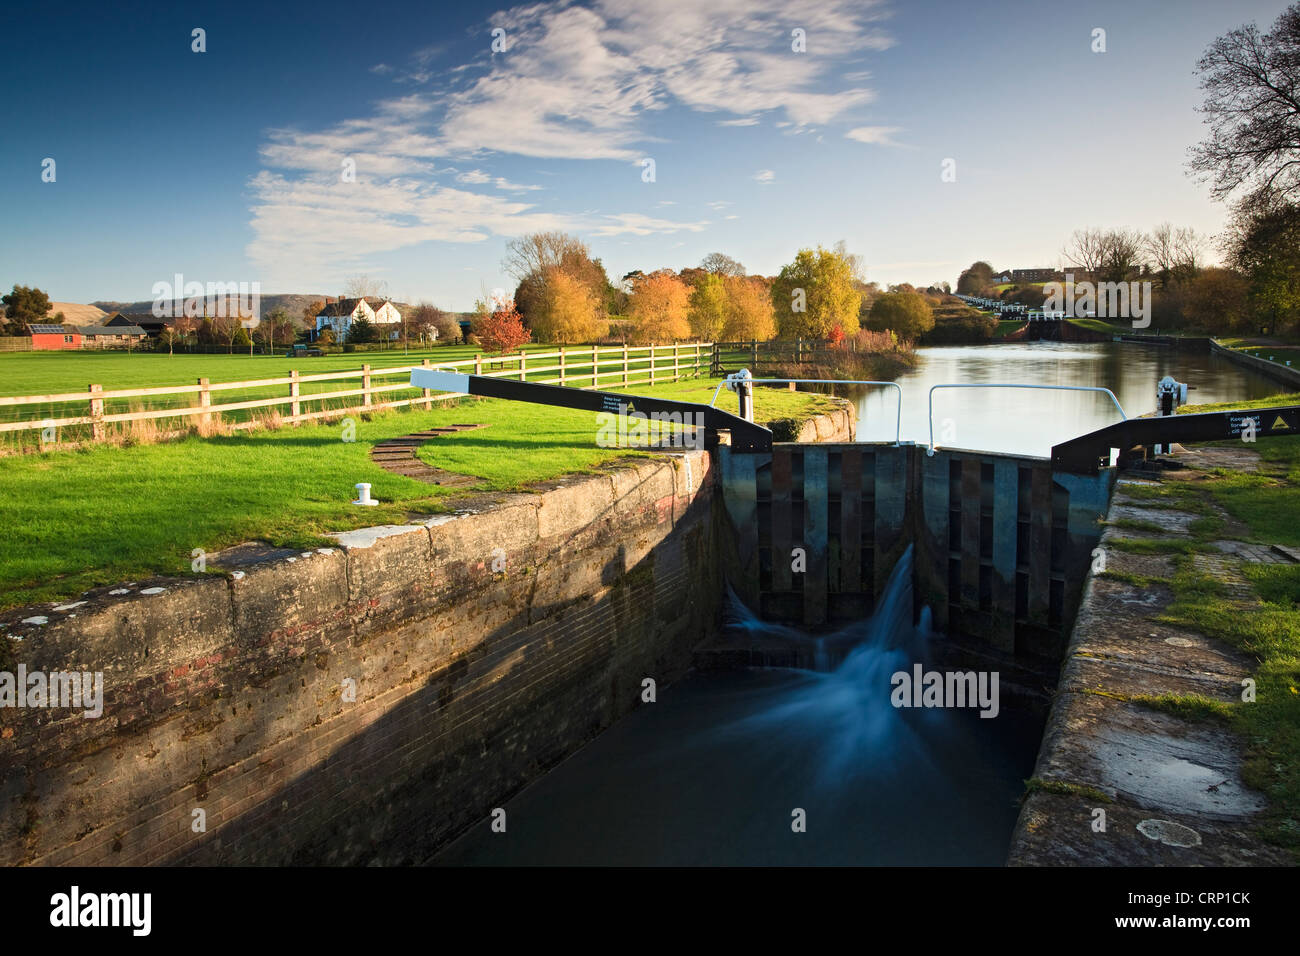 Caen Hill locks on the Kennet and Avon Canal near Devizes, a flight of 29 locks rising 237 feet in 2 miles. - Stock Image